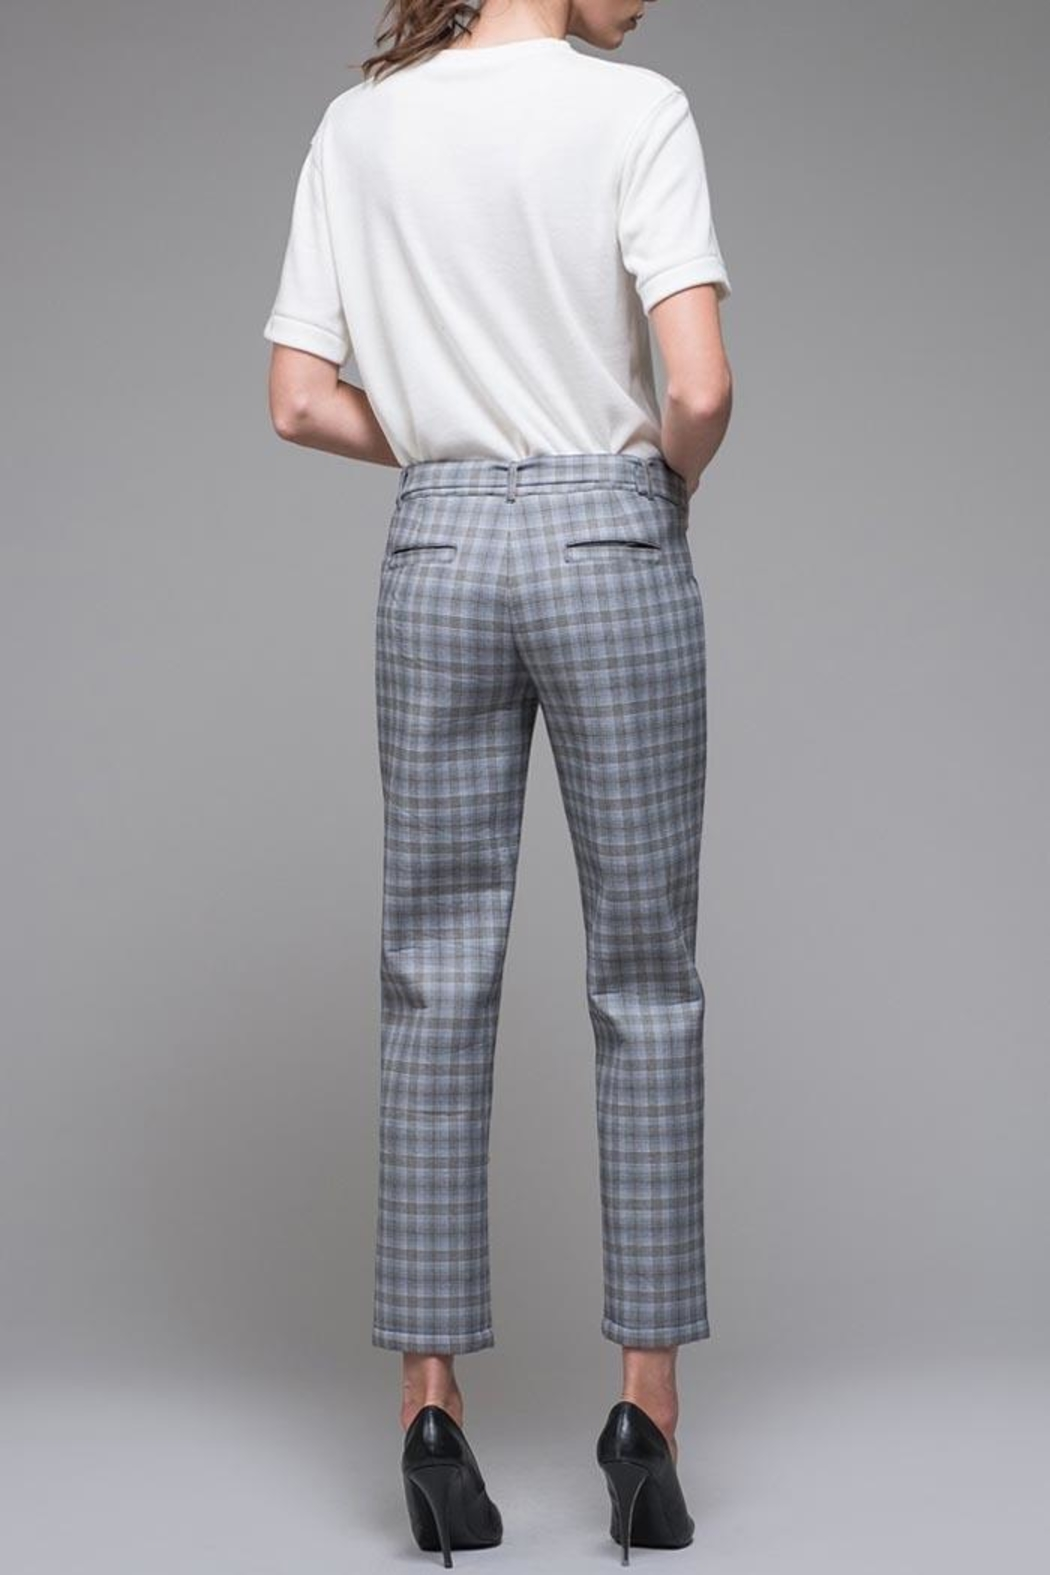 EVIDNT Blue Plaid Pant - Back Cropped Image